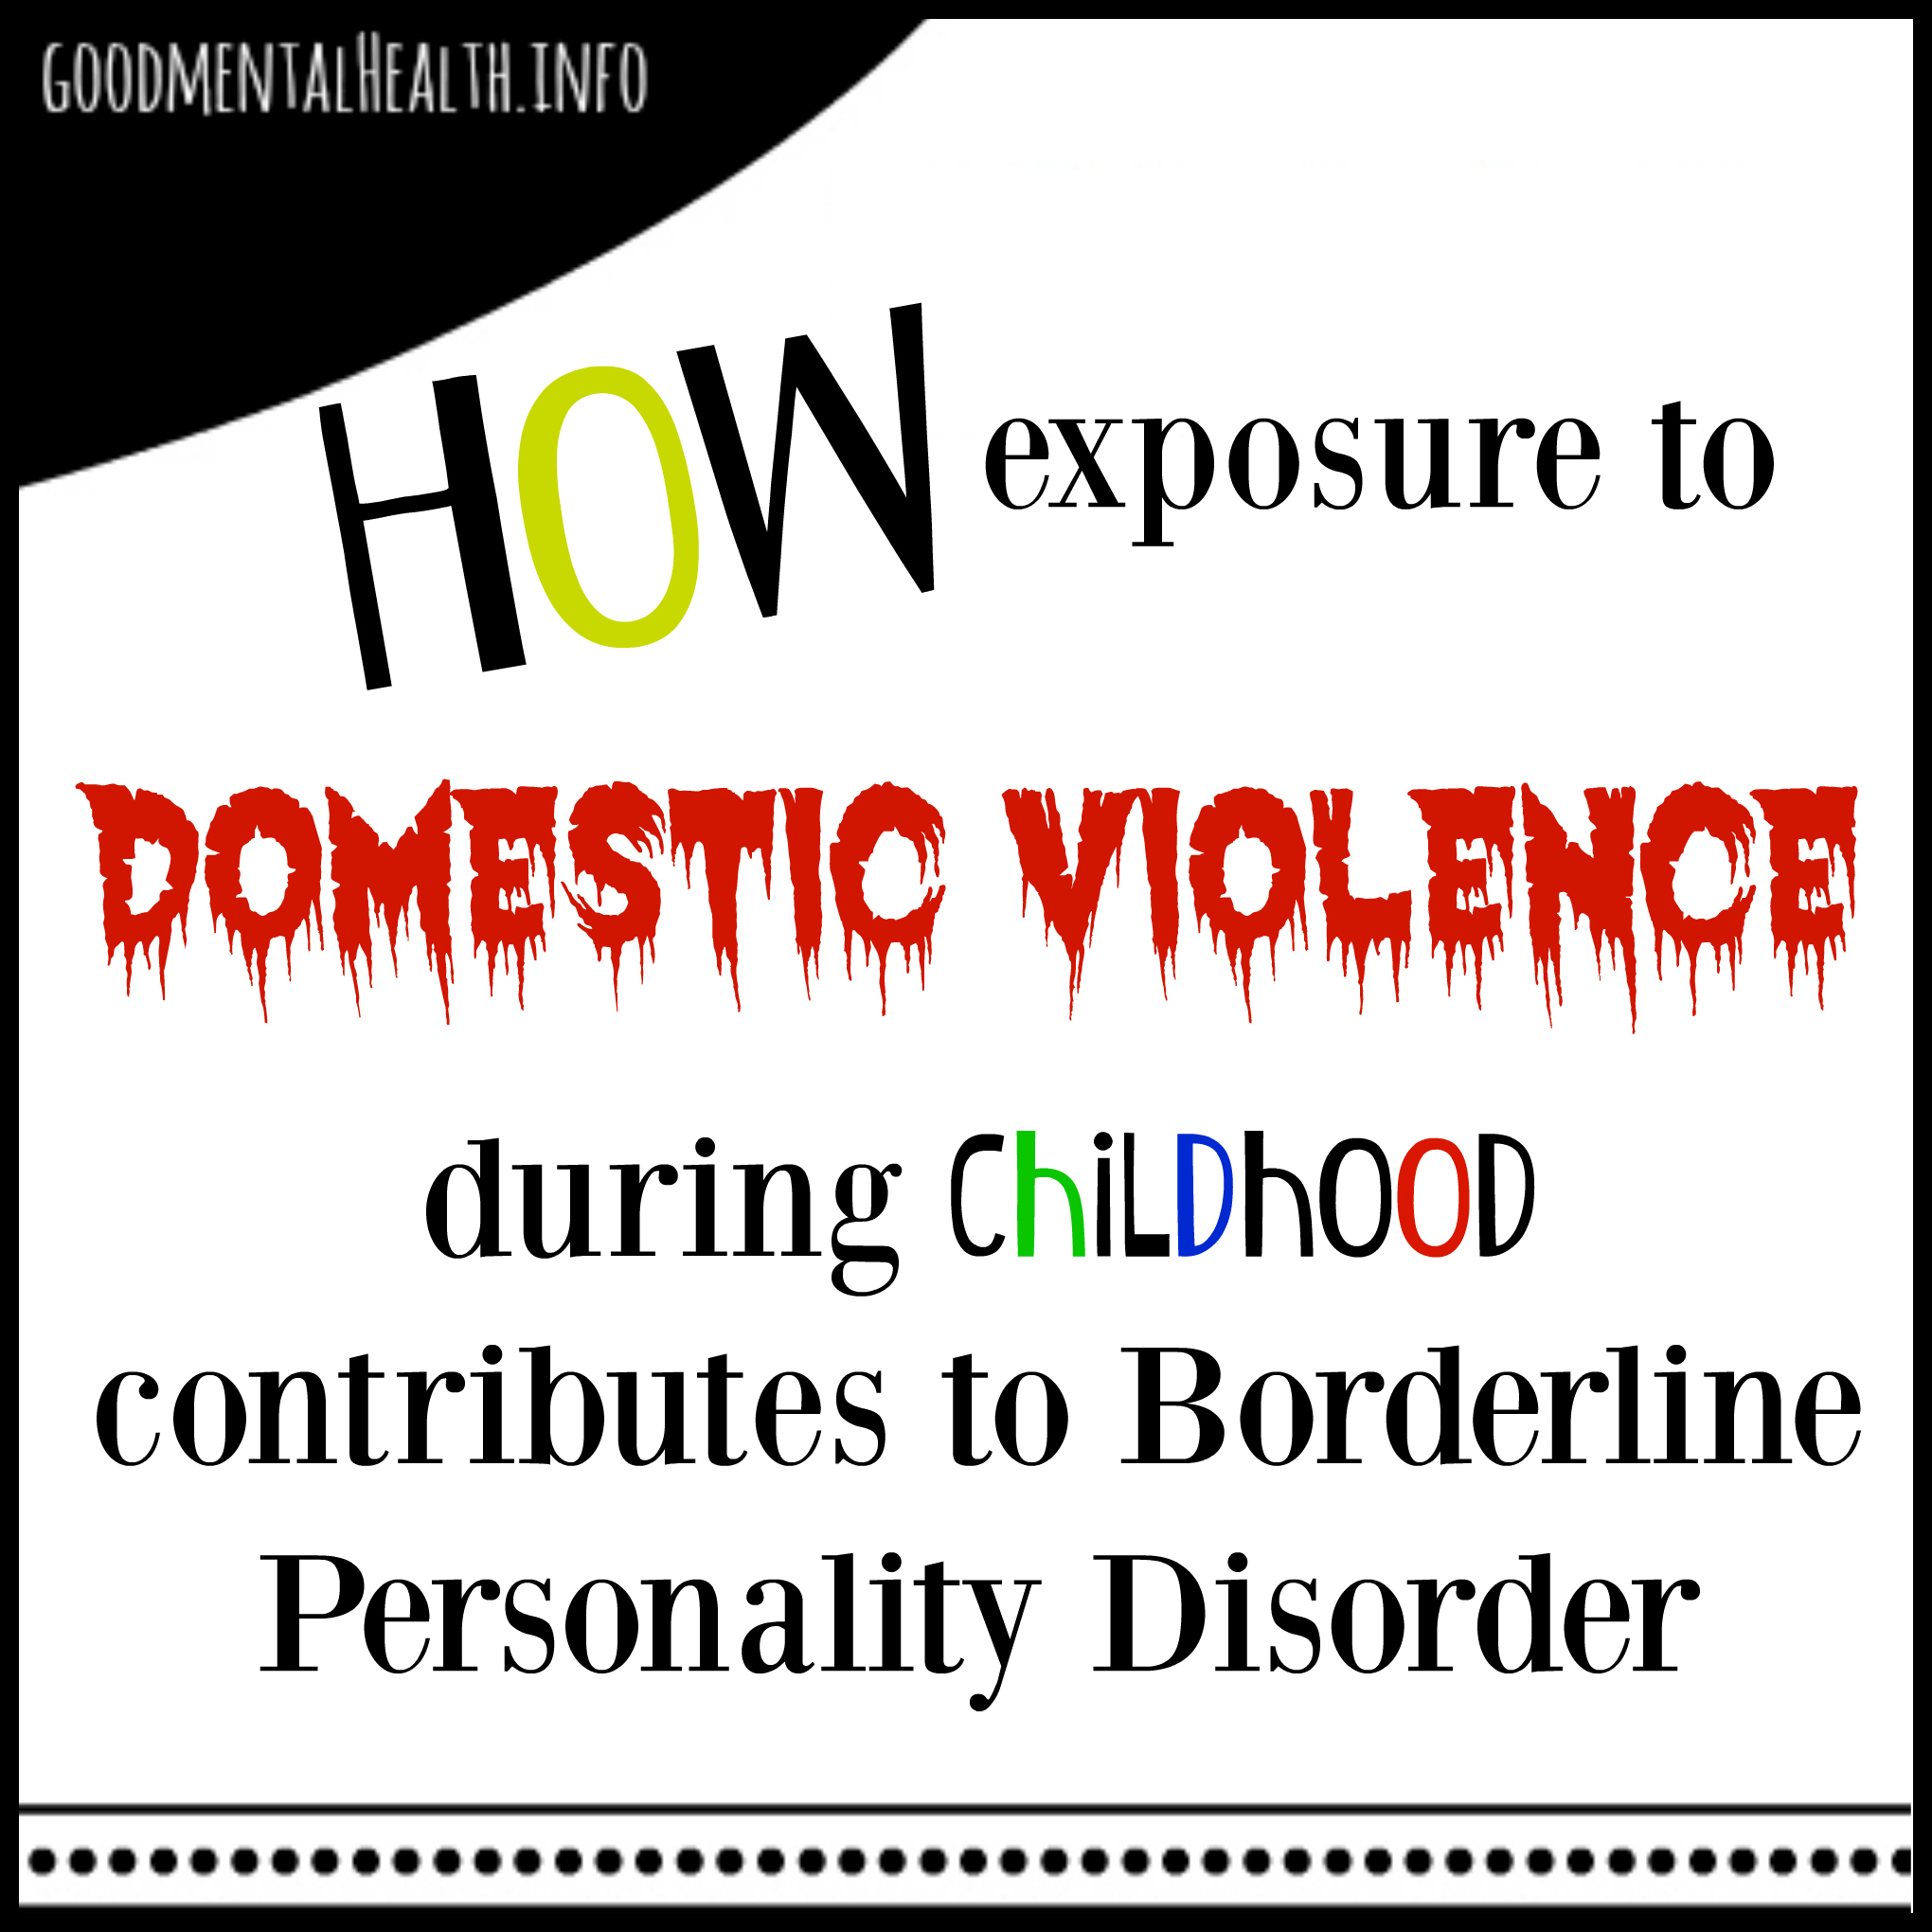 taking a look at borderline personality disorder A diagnosis of borderline personality disorder (bpd) may seem devastating there's a lot of confusion about what bpd really means and how it's actually treated.